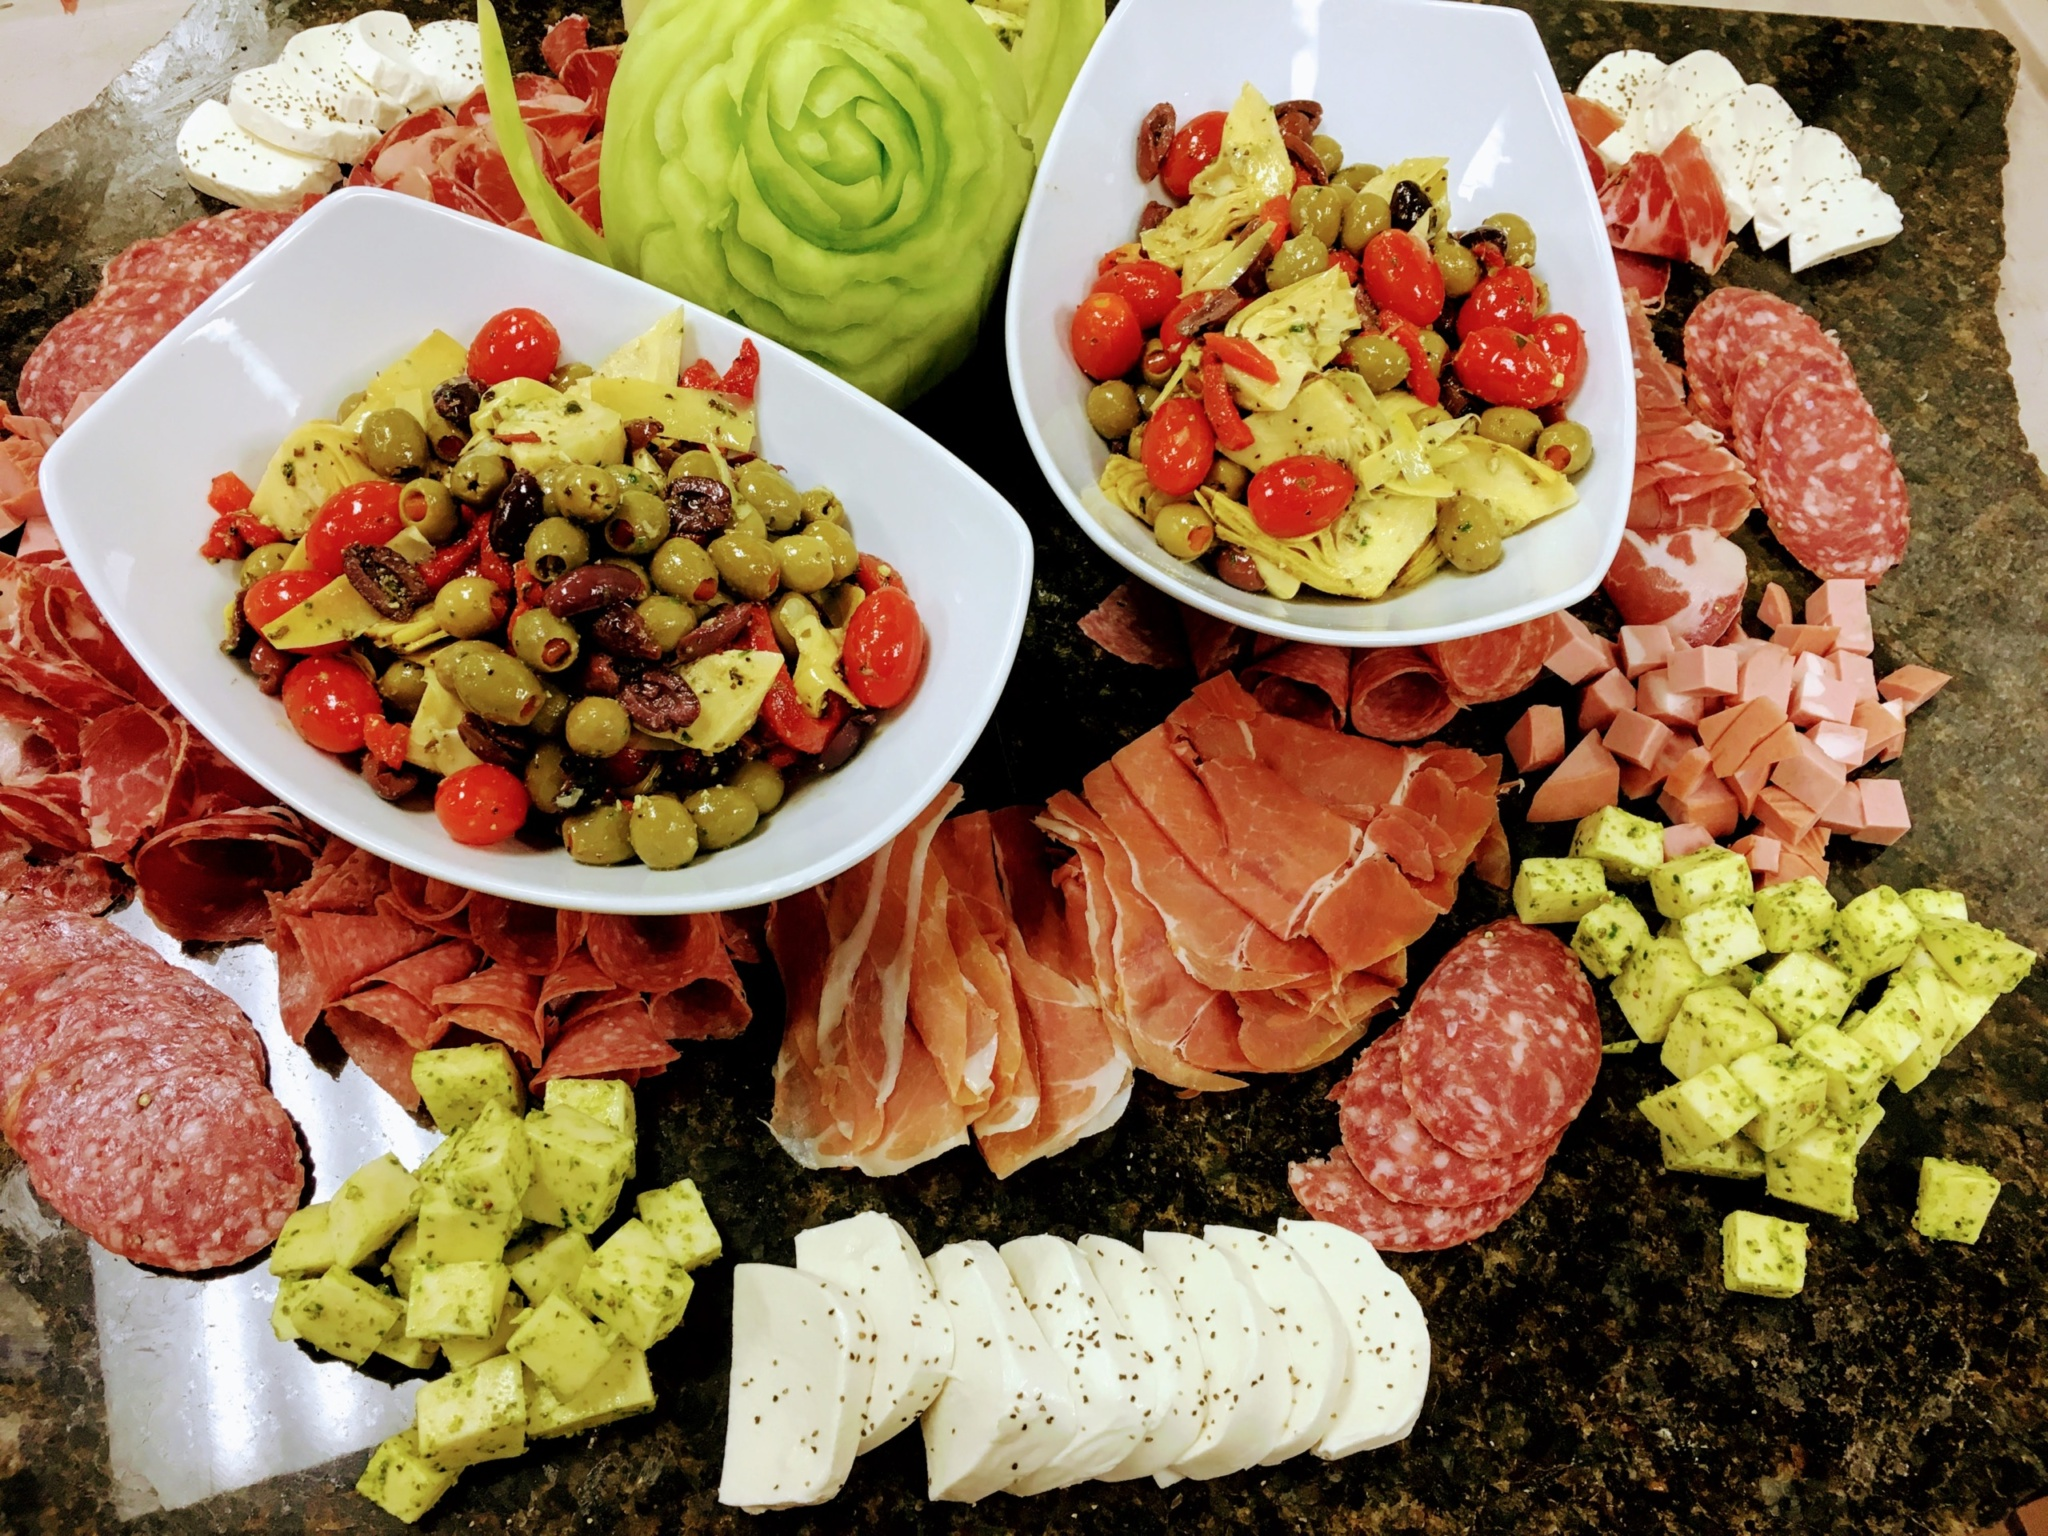 Party catering display of assorted cured meats with olives and different cheeses on a marble stone